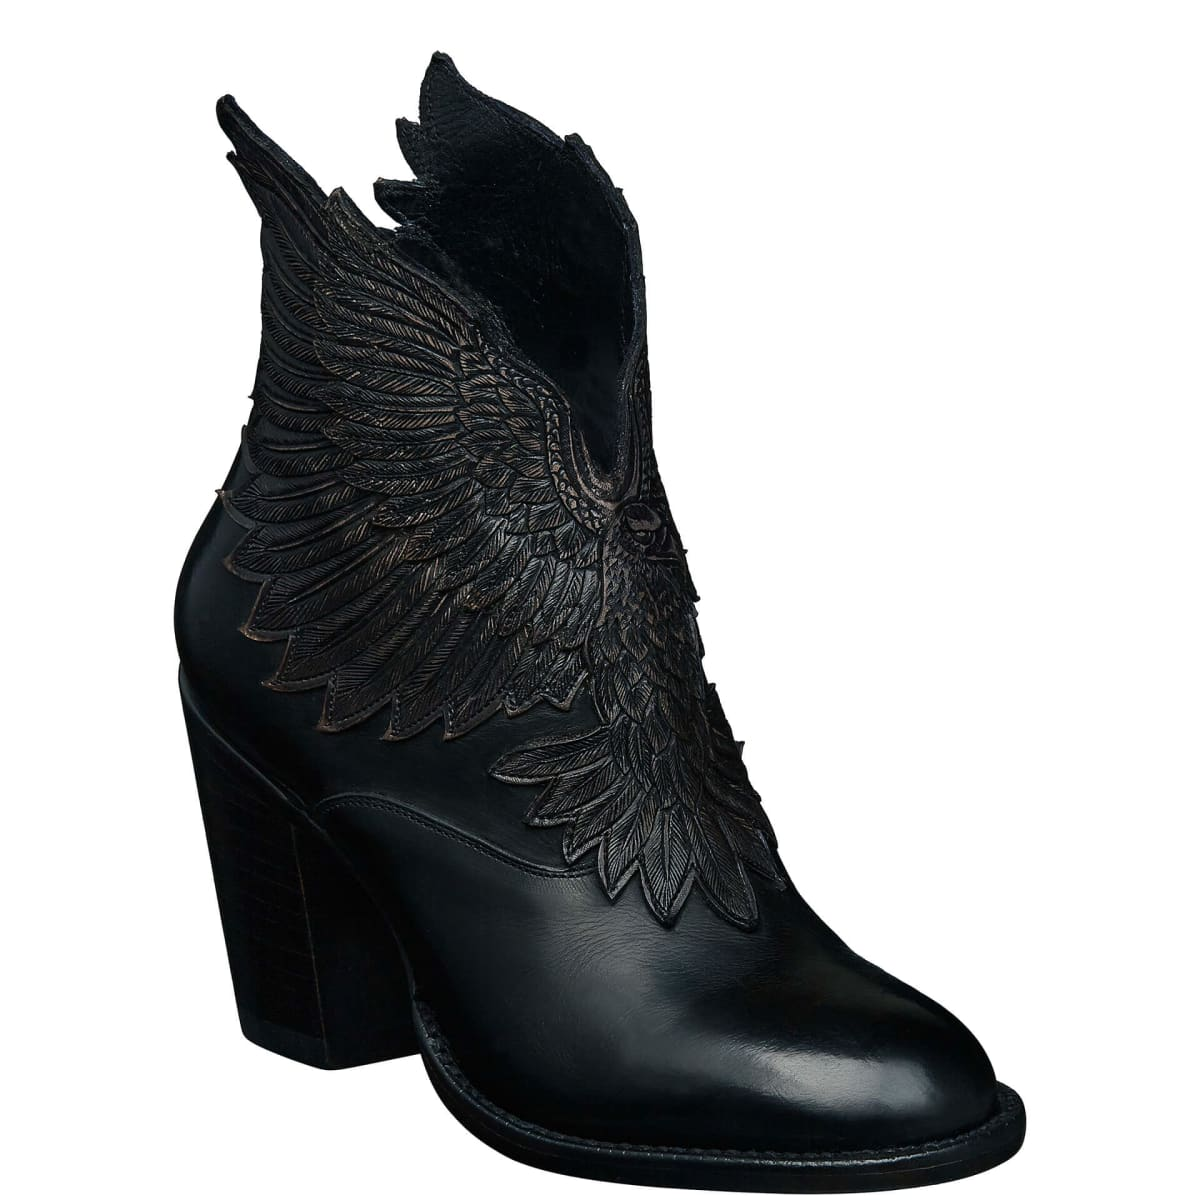 Lucchese Celeste Black Bootie